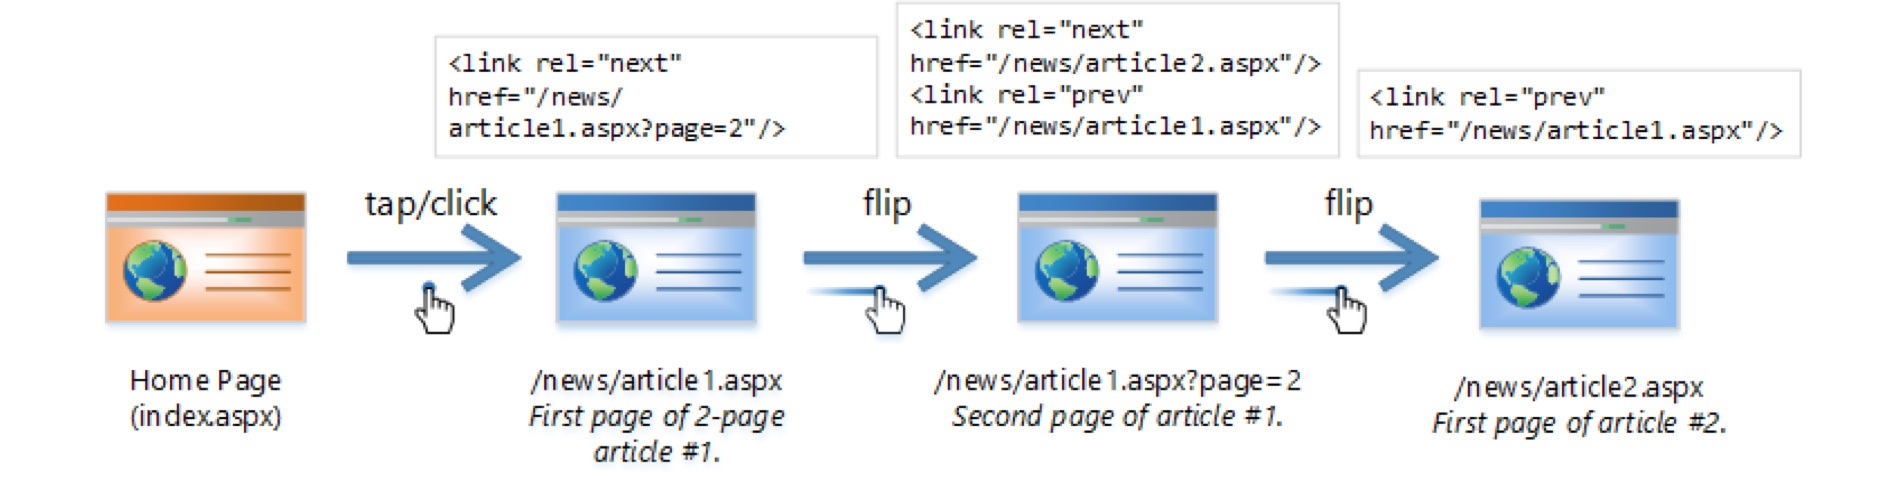 Next-Previous Topic Navigation feature image